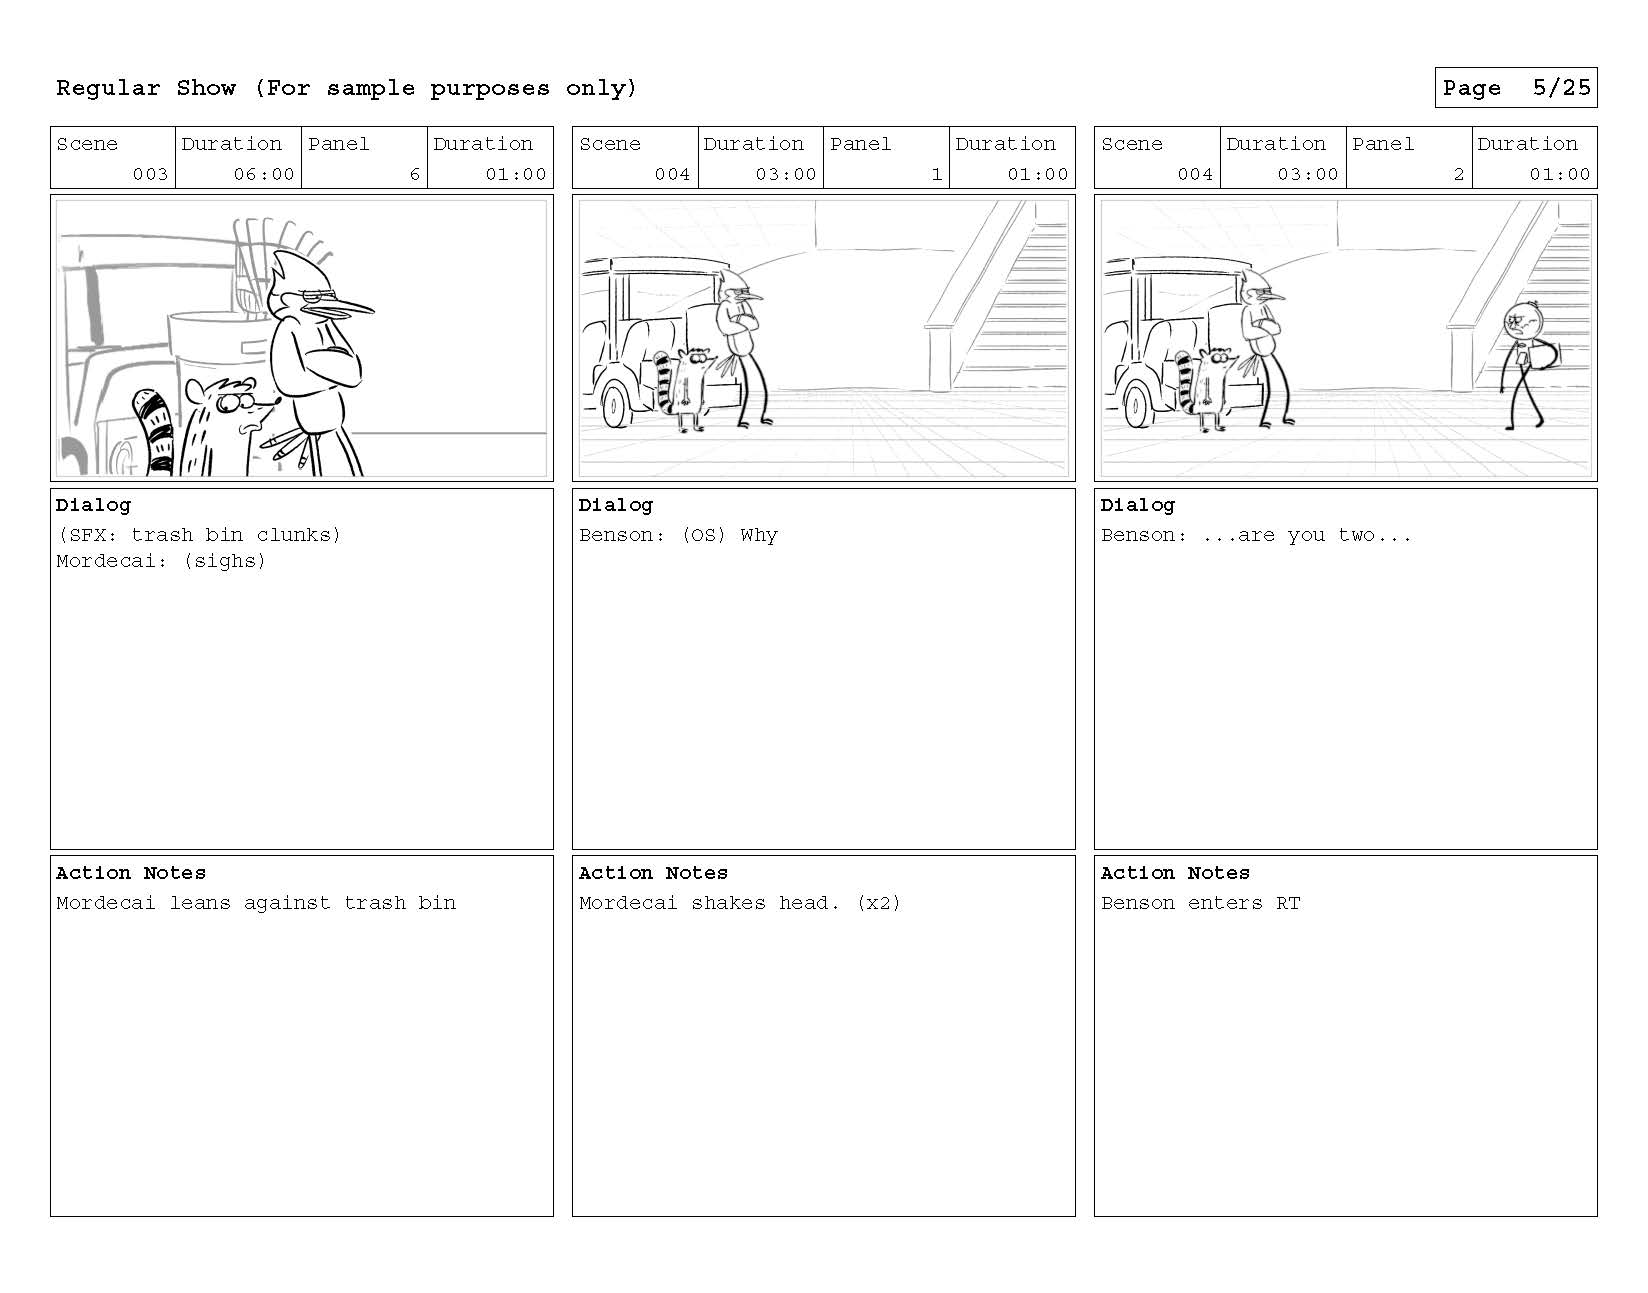 thelfer_rs_sample_Page_06.jpg